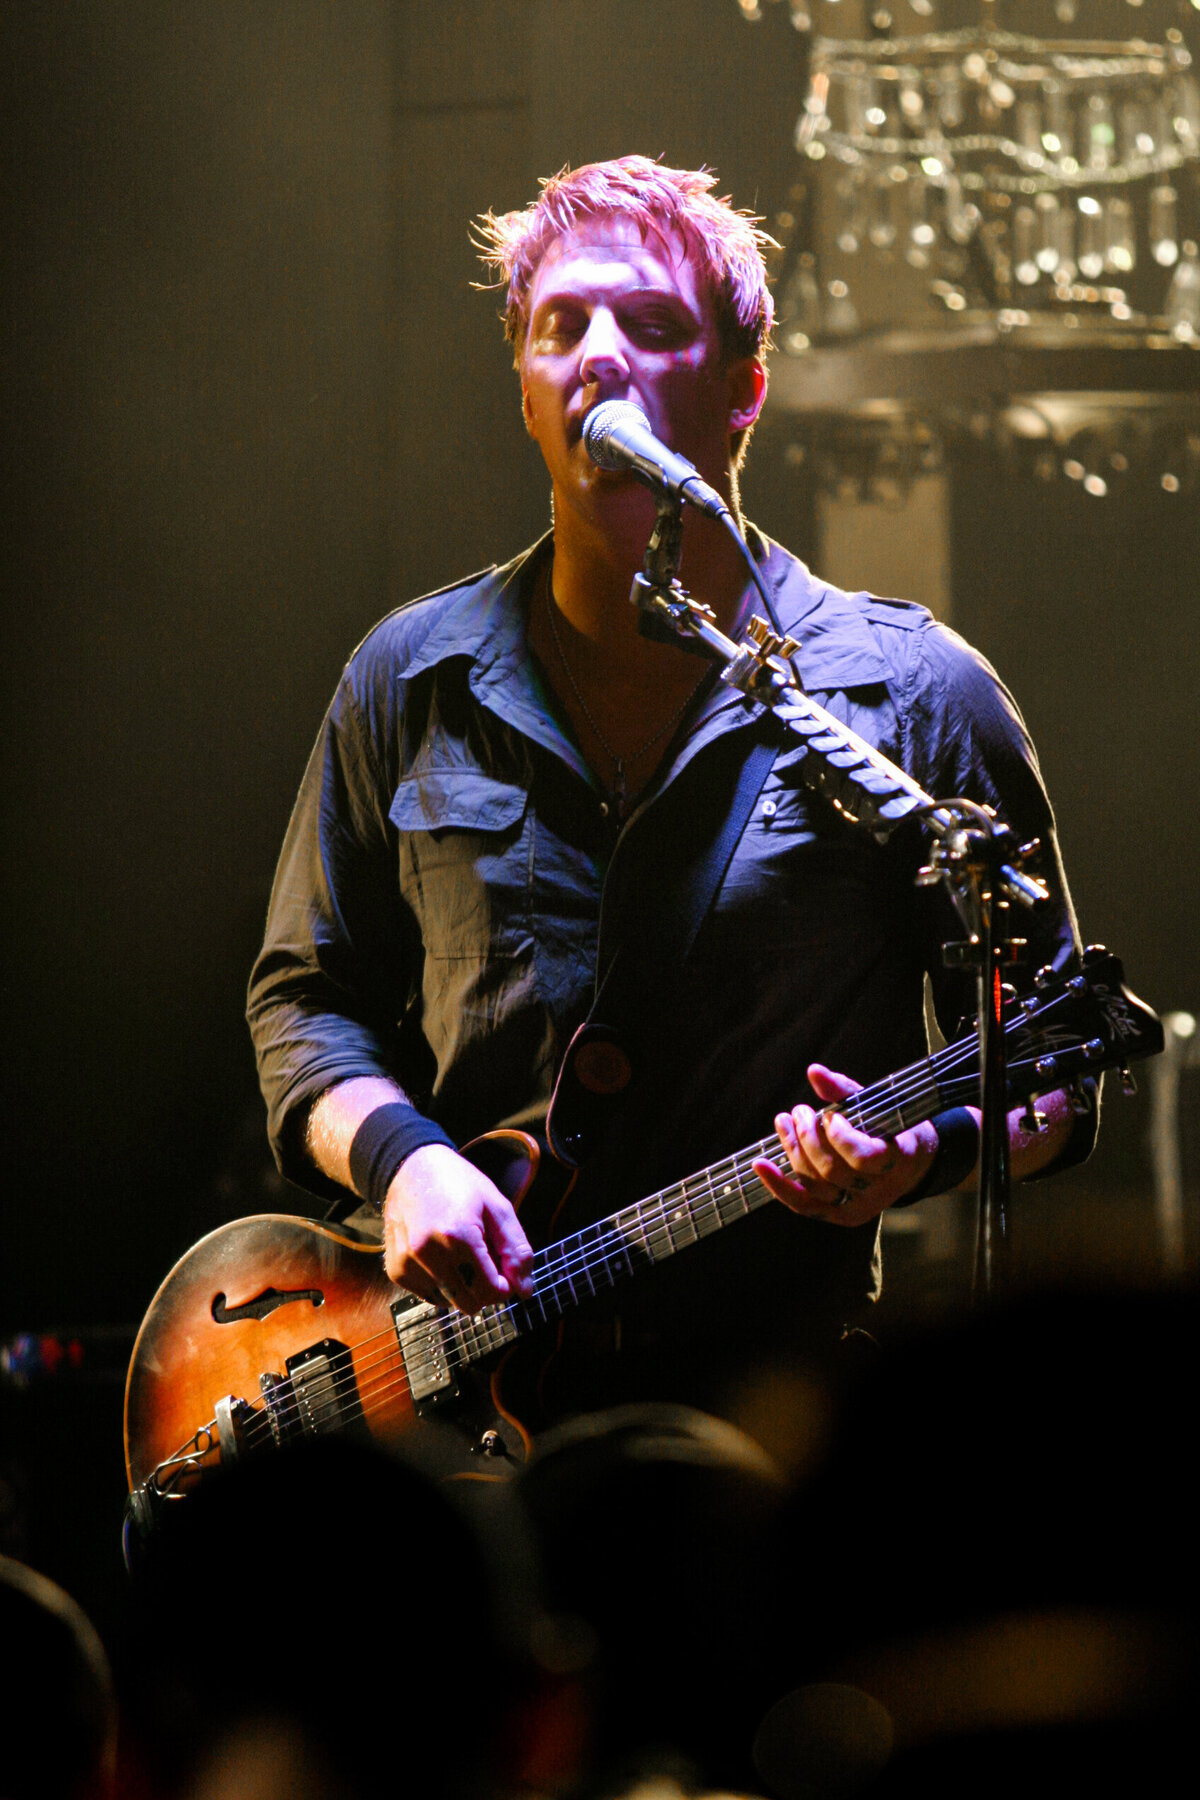 079-Queens-of-the-Stone-Age-Josh-Homme-2006-Kelli-Hayden